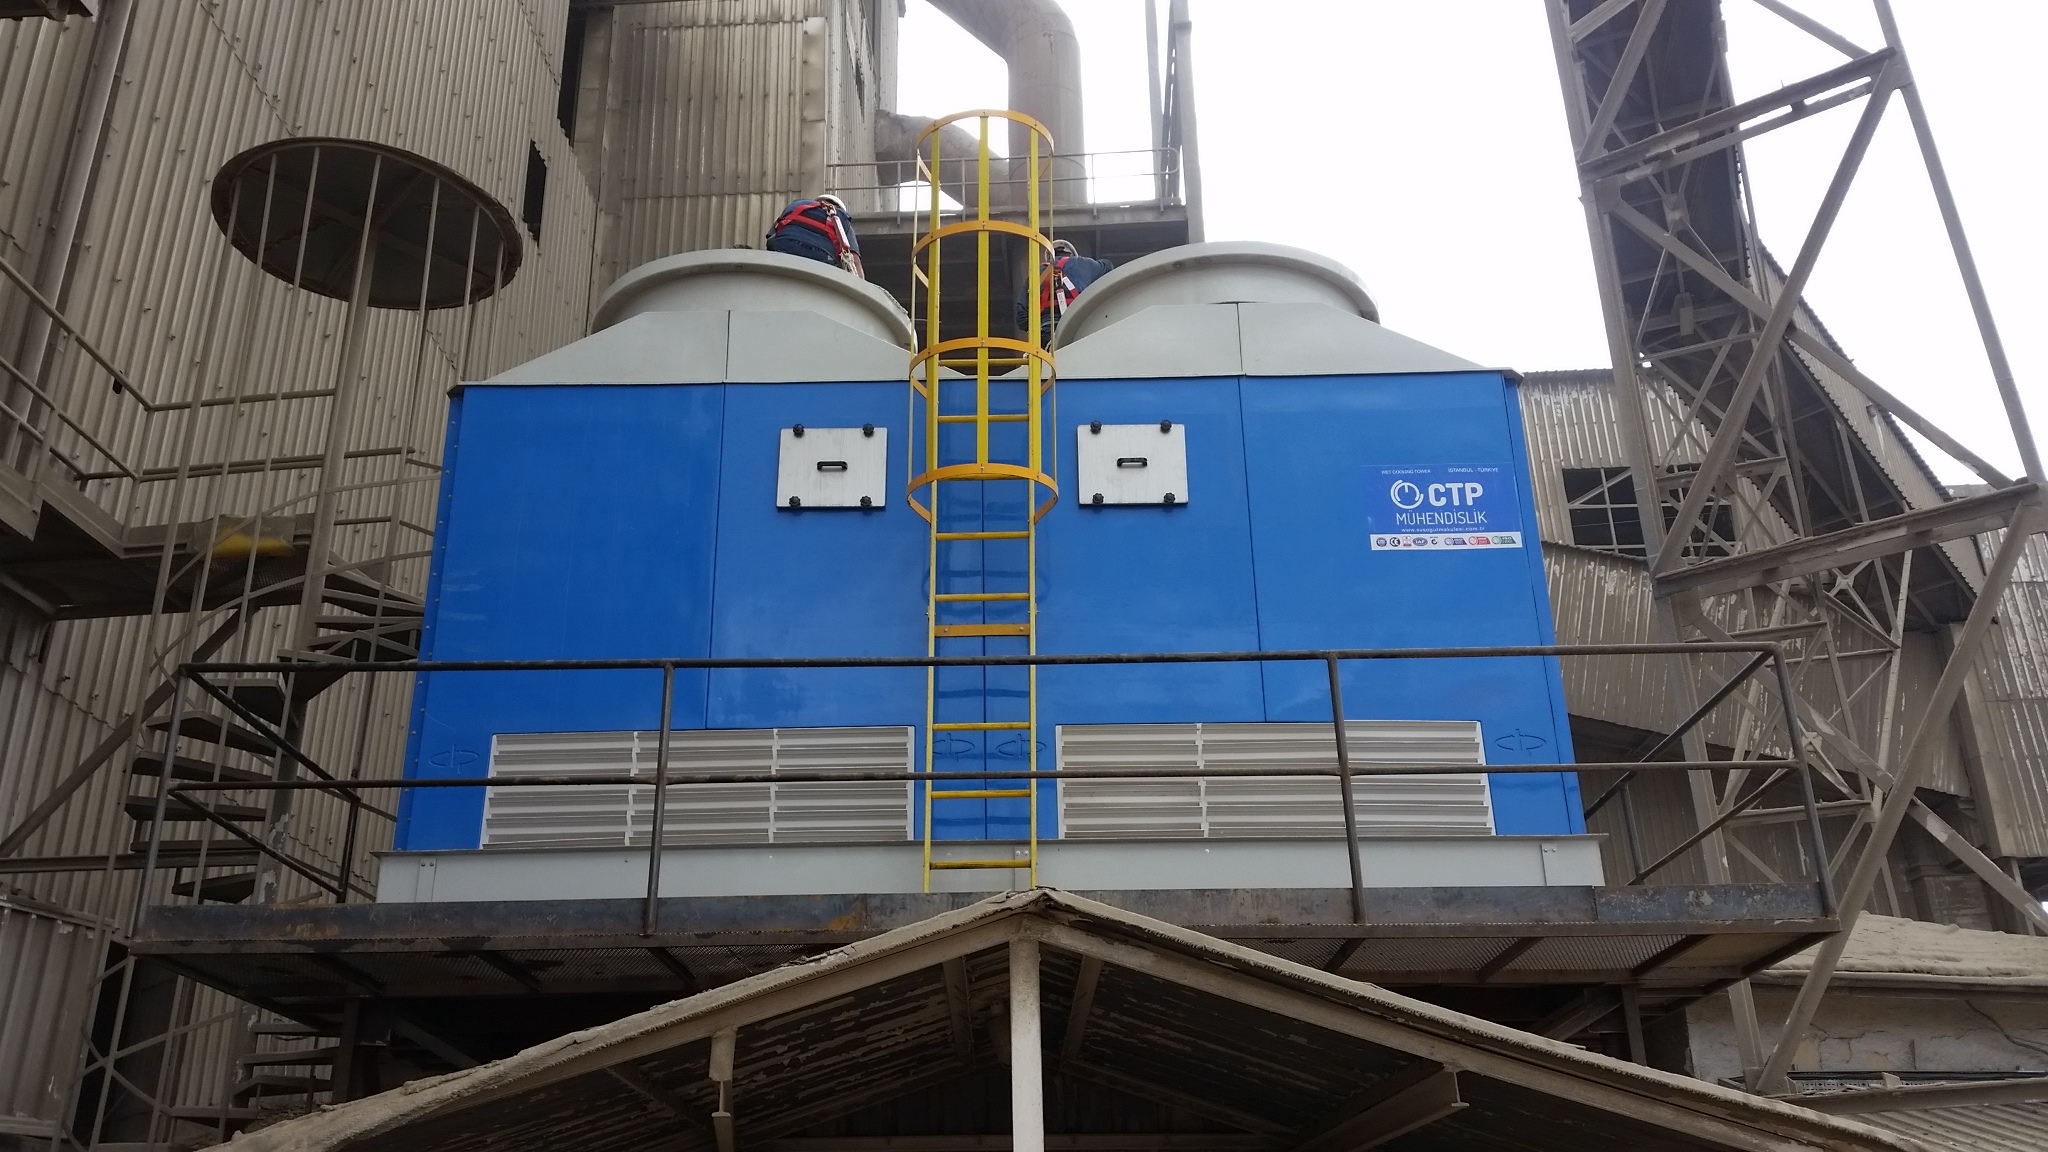 Wet cooling tower ctp engineering_11